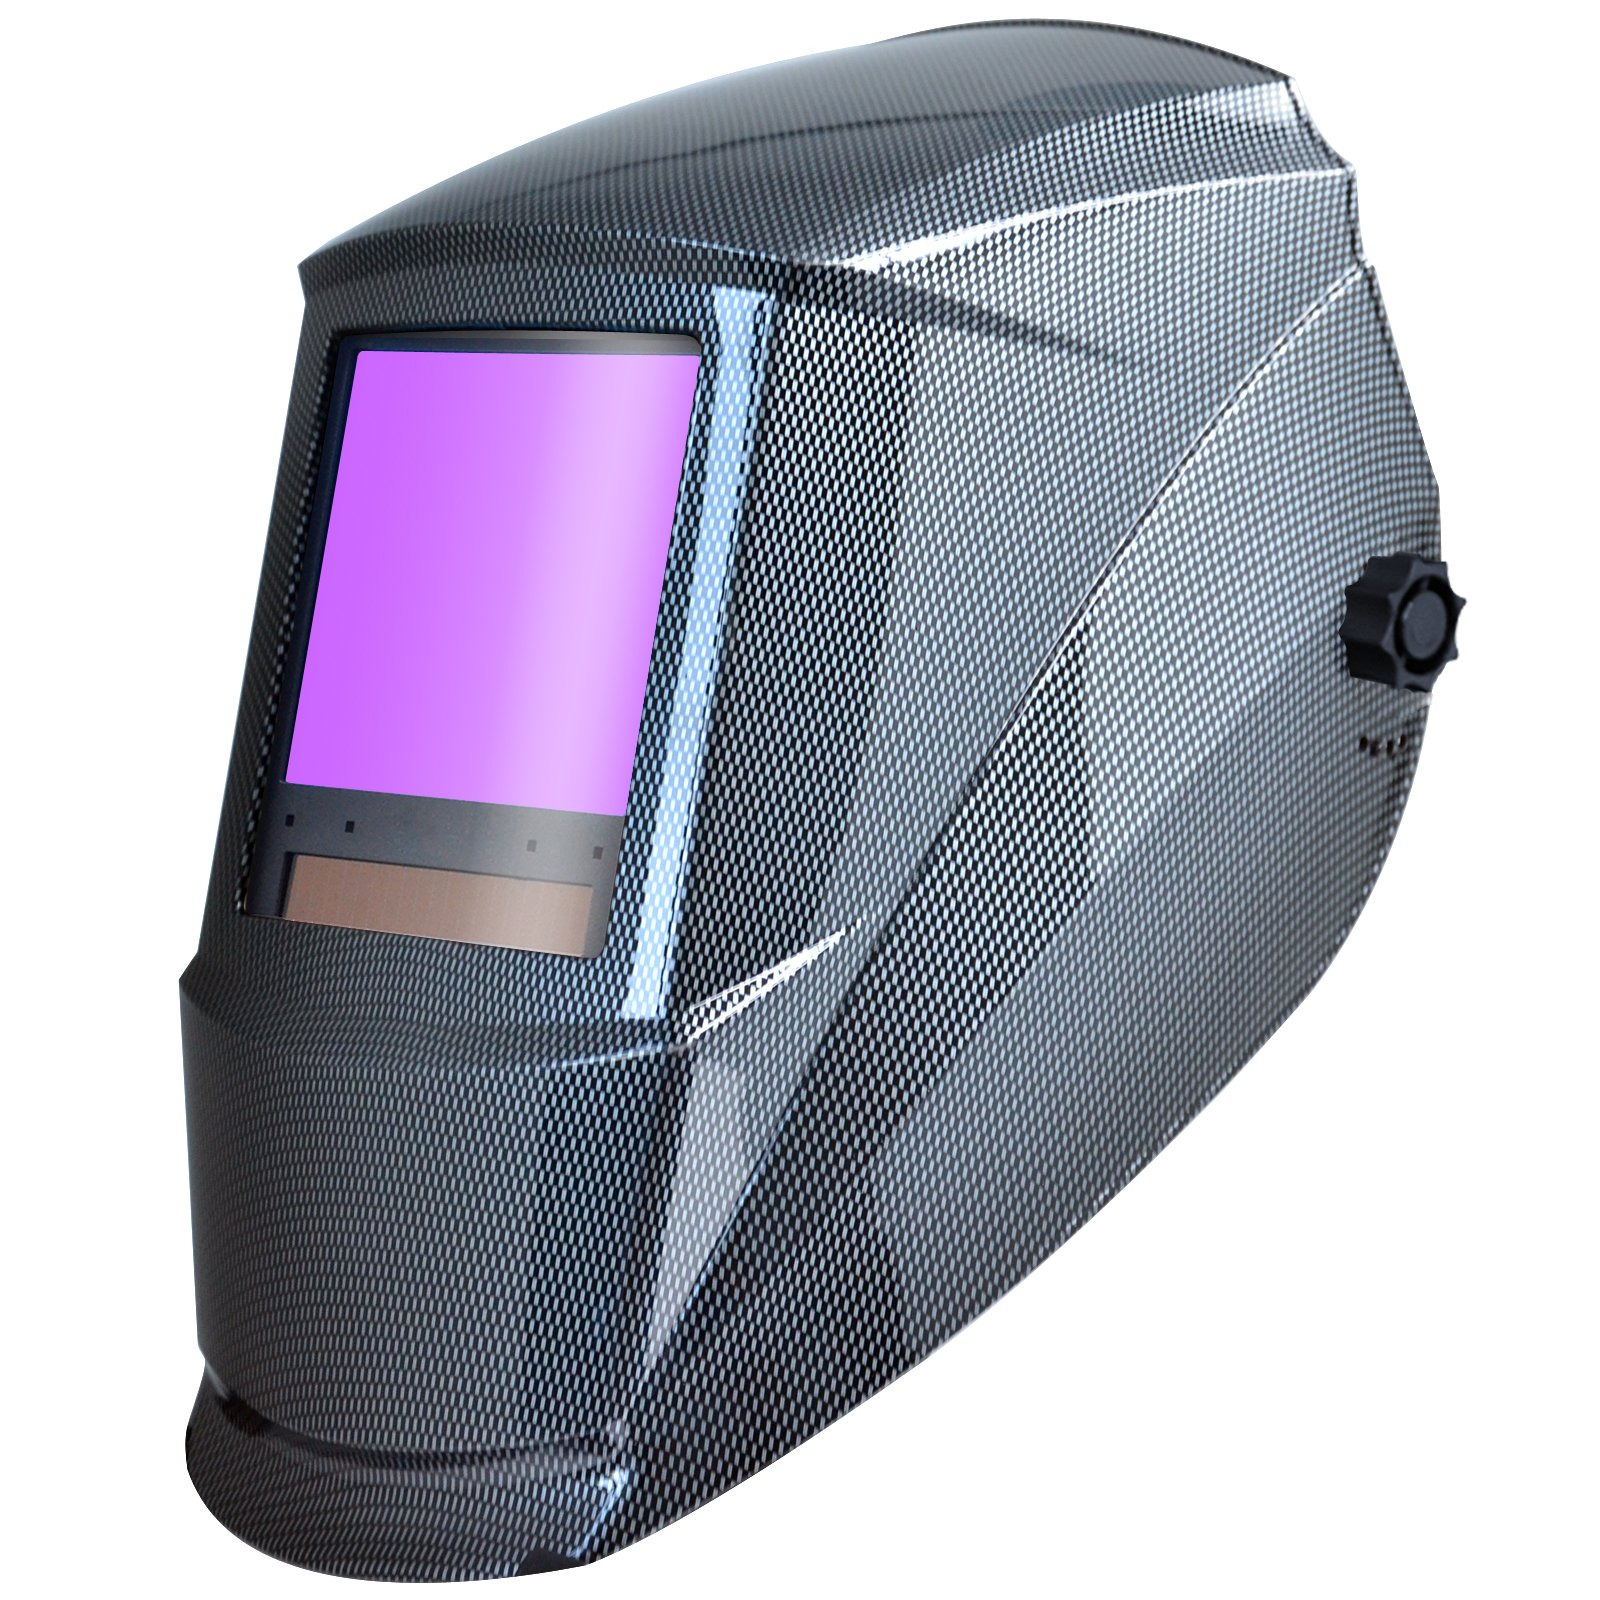 Antra Welding Helmet Auto Darkening AH7-860-001X Huge Viewing Size 3.86X3.5'' Wide Shade Range 4/5-9/9-13 Great for TIG MIG/MAG MMA Plasma, Grinding, Solar-Lithium Dual Power, 6+1 Extra Lens Covers by Antra